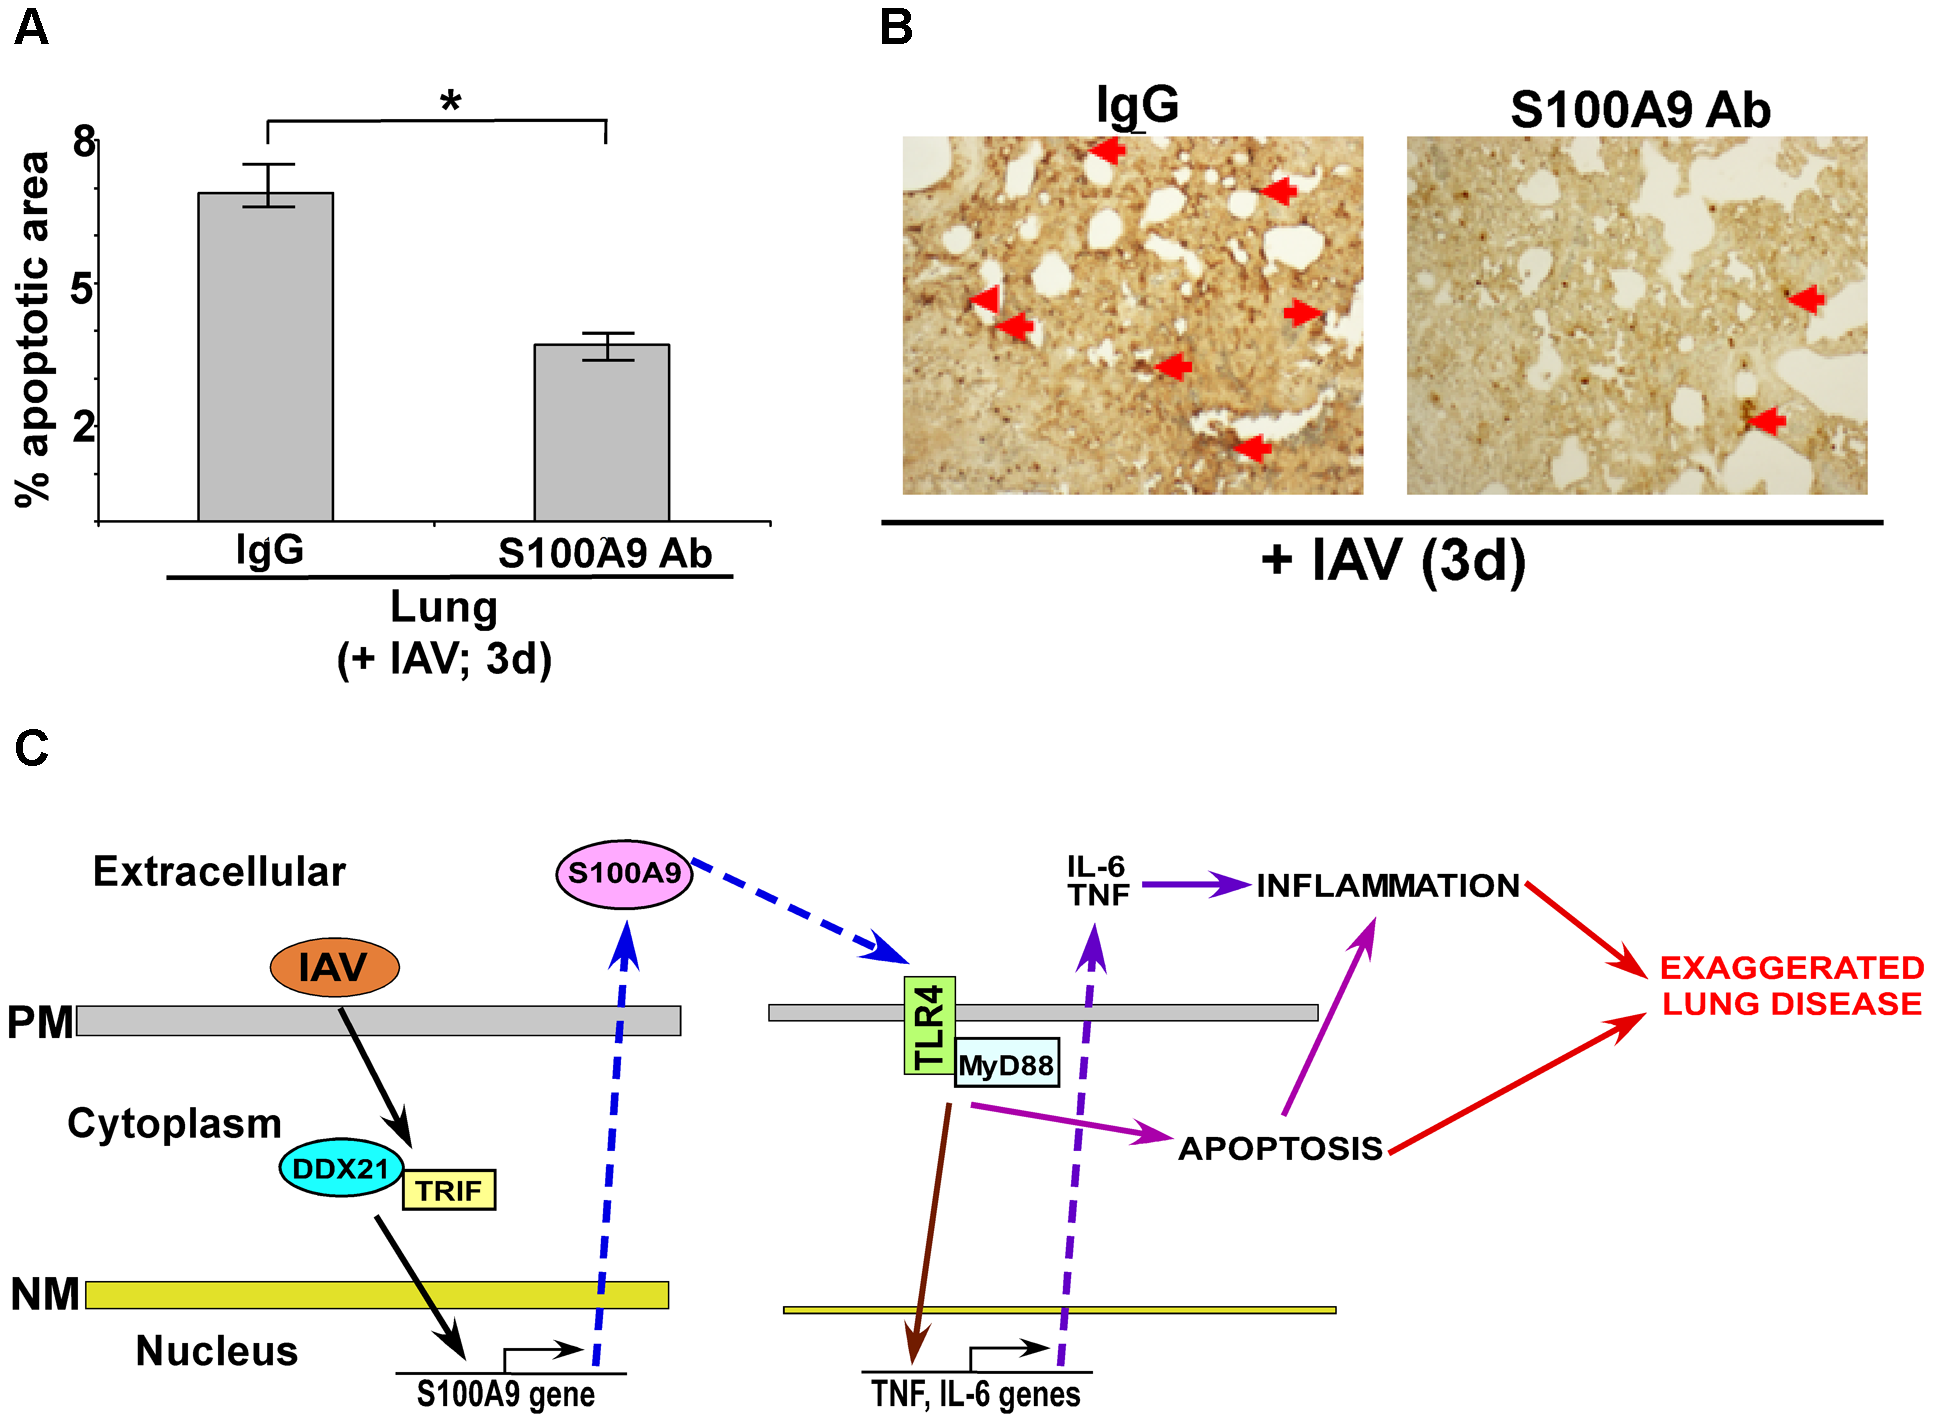 Extracellular S100A9 promotes optimal apoptosis in the lung of IAV infected mice.